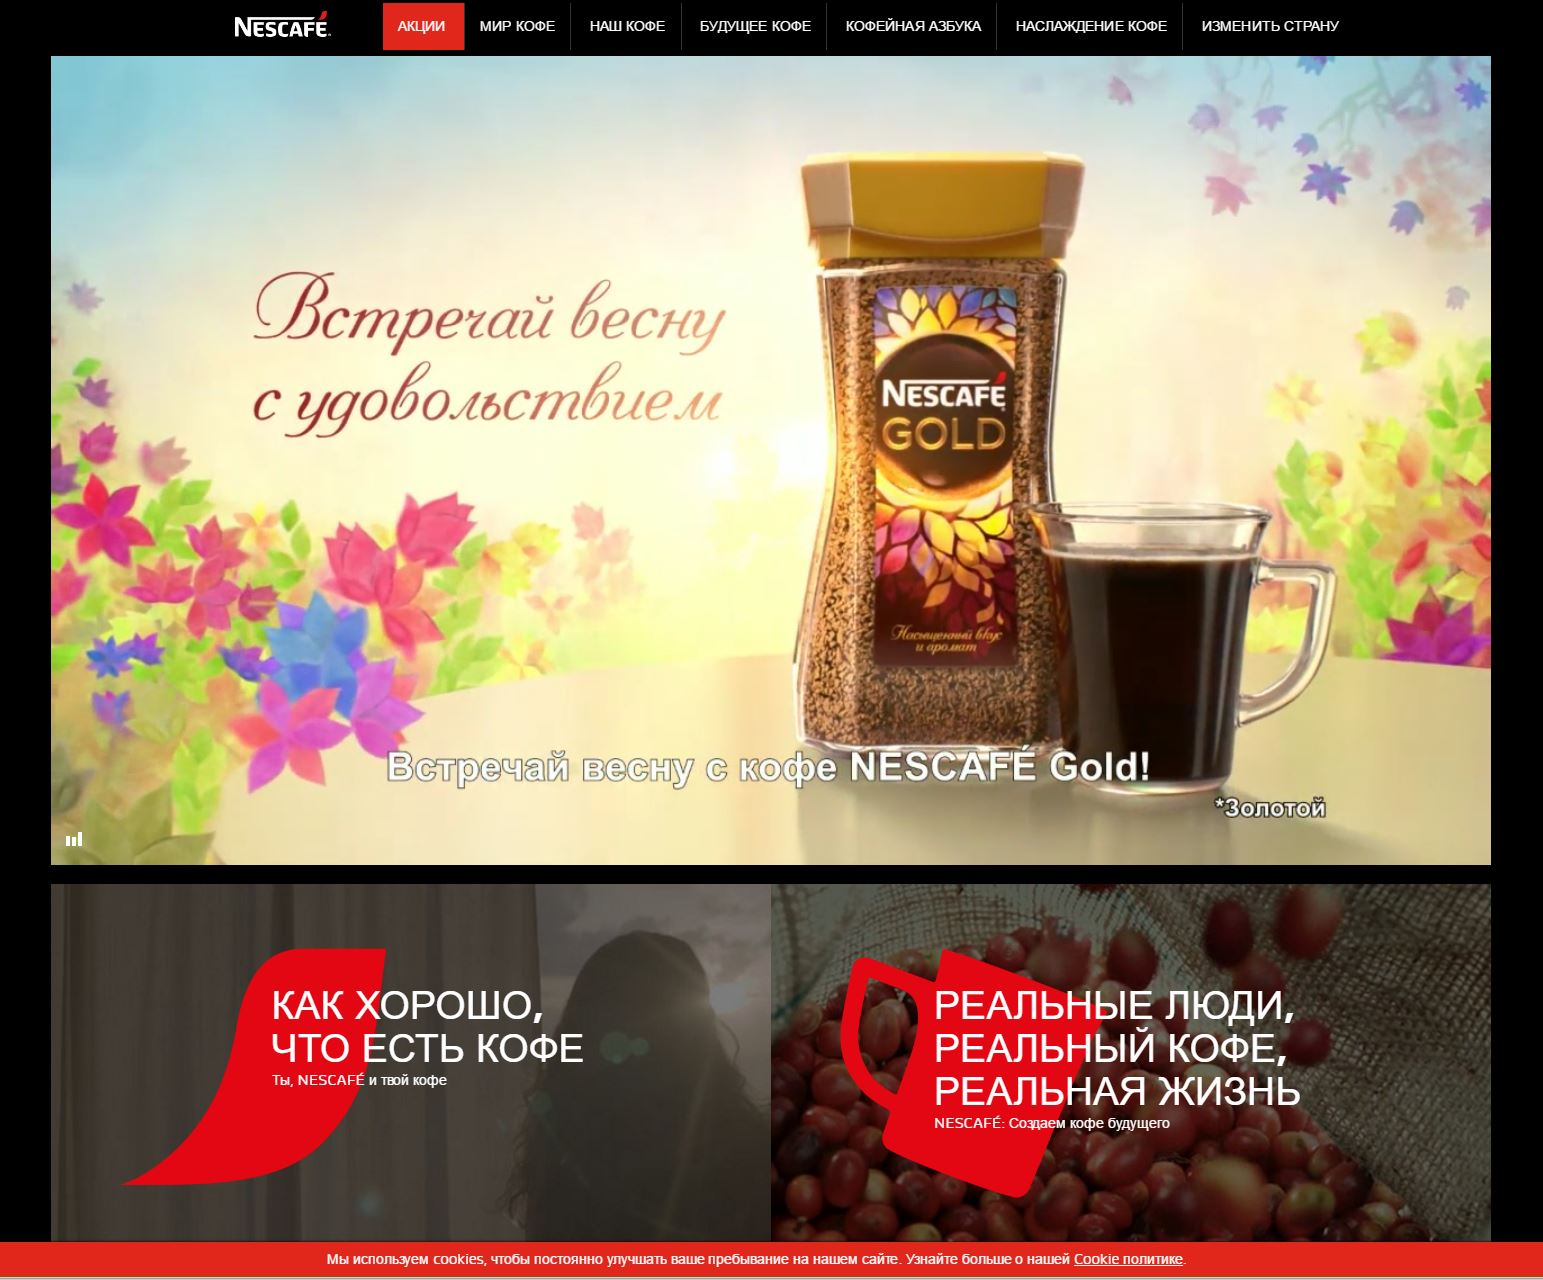 Nescafe Russia home